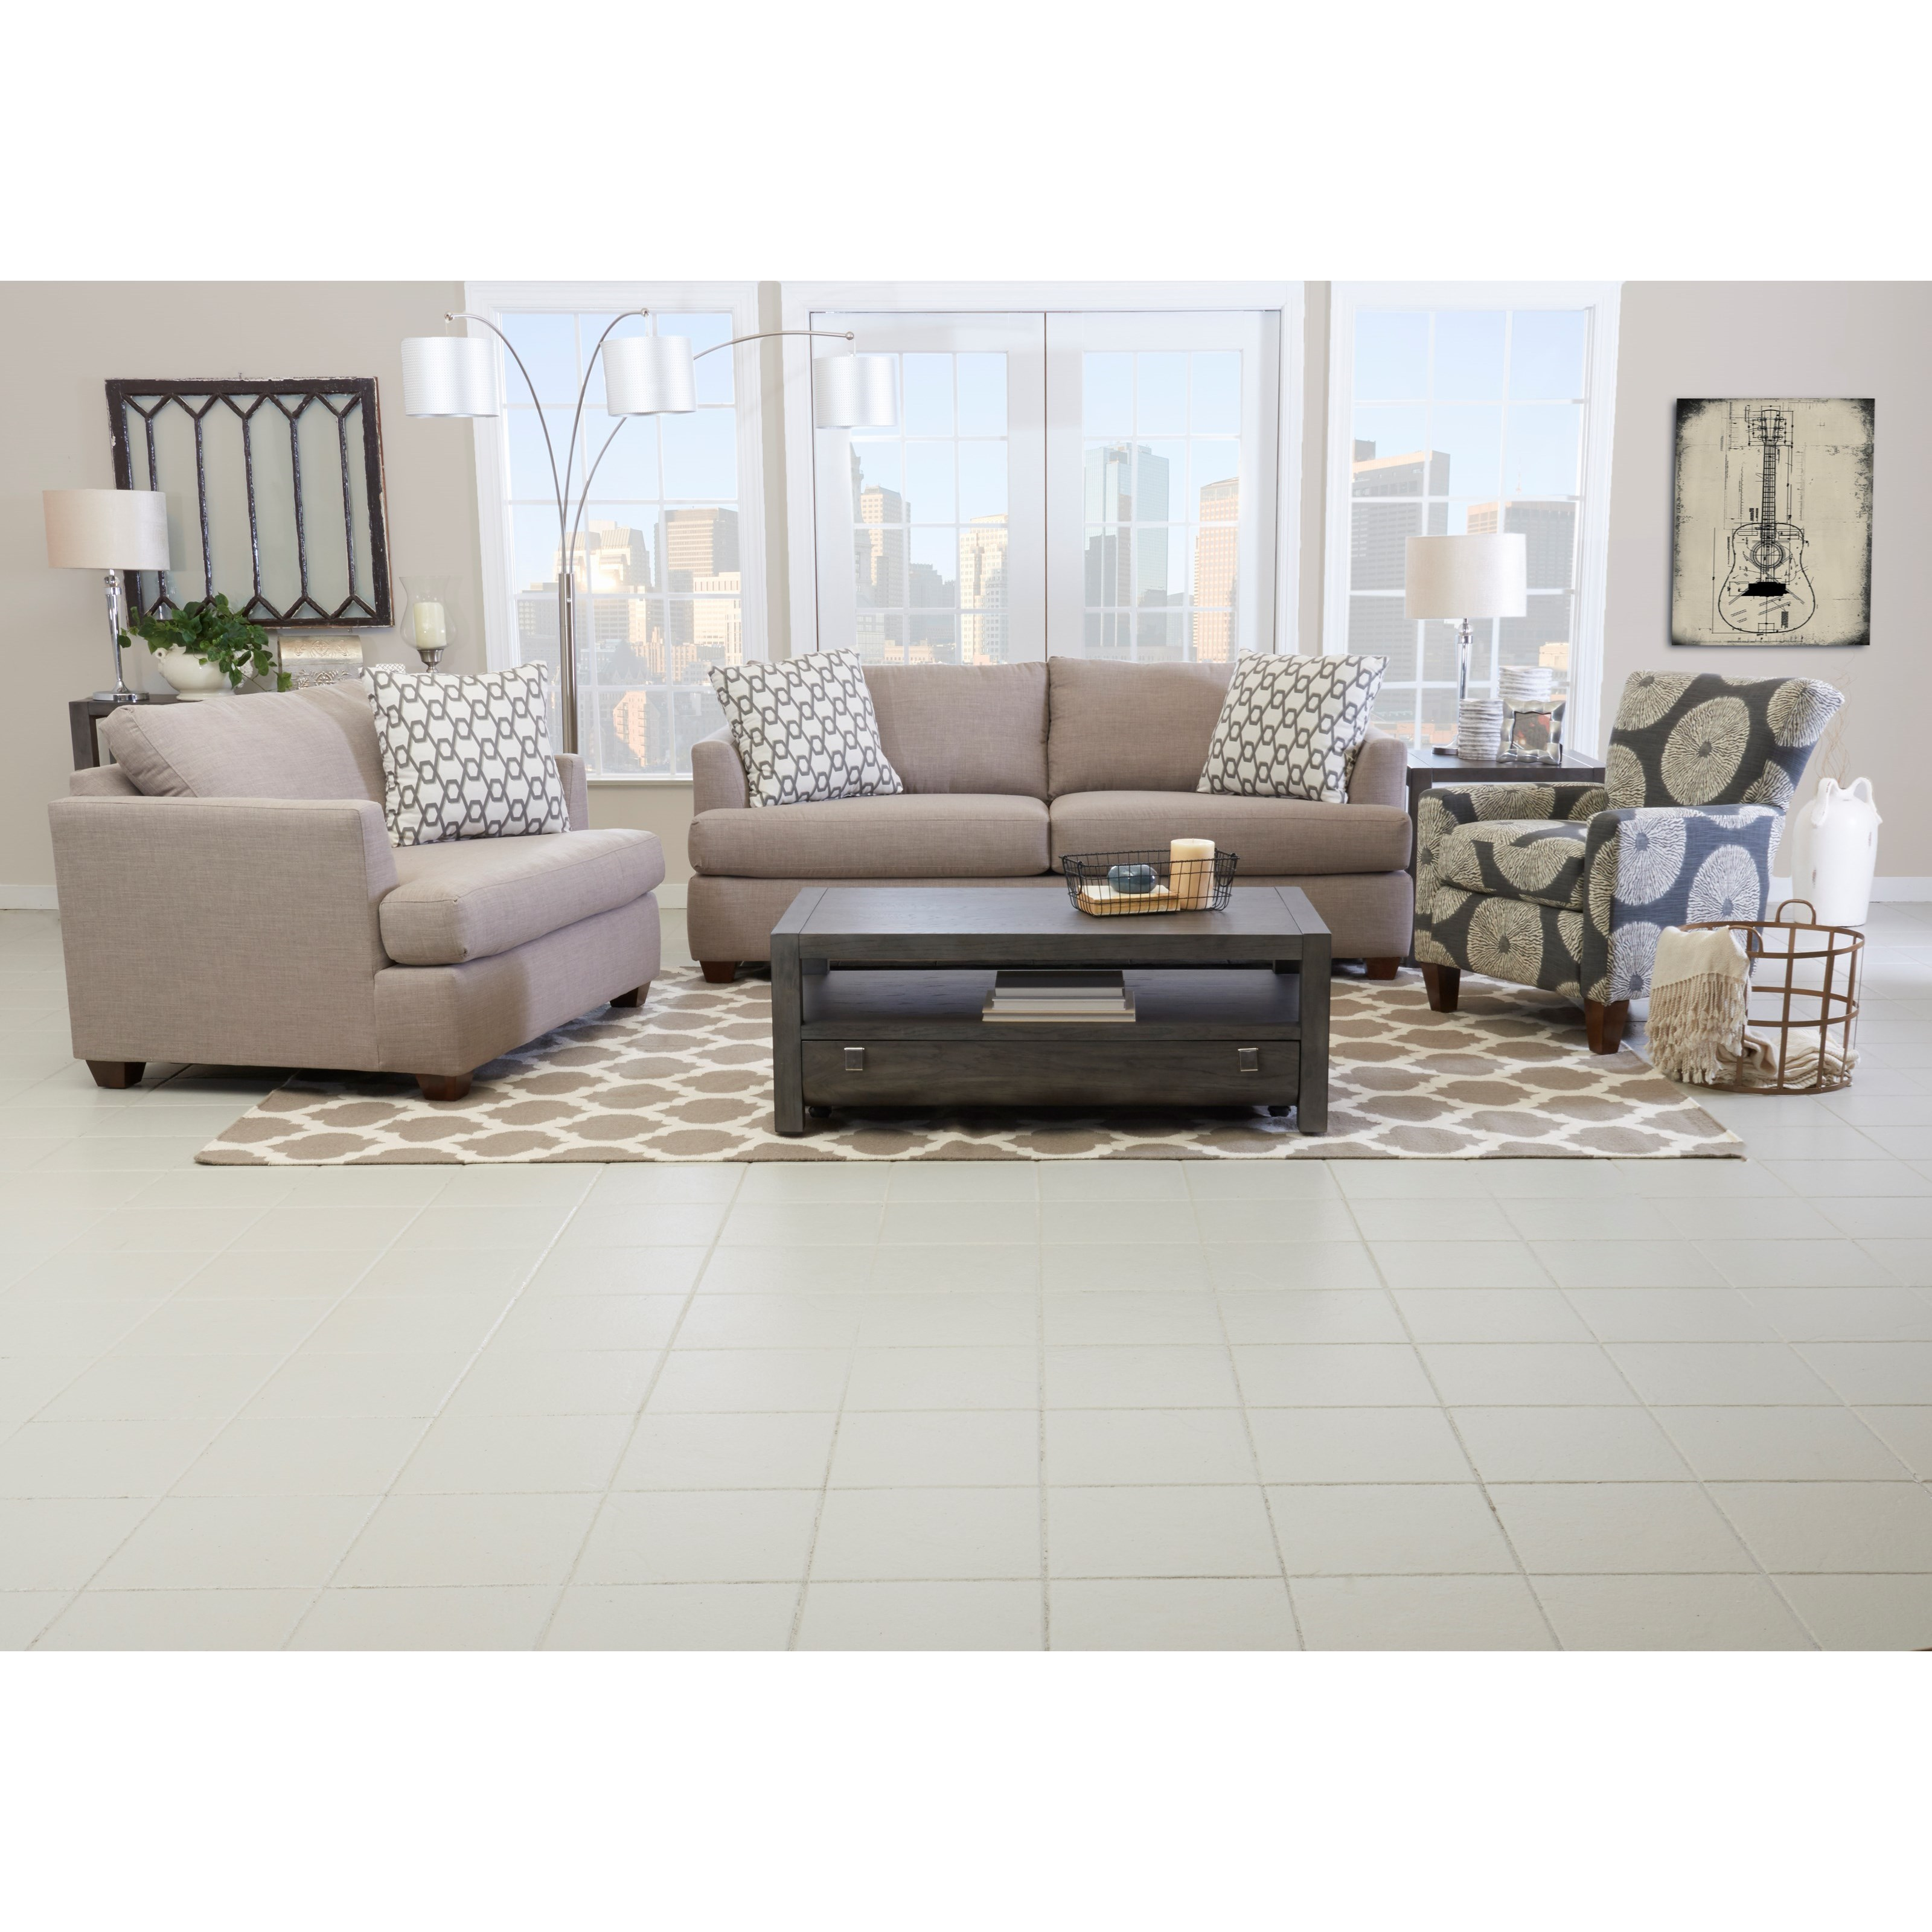 Jack Living Room Group by Klaussner at Johnny Janosik